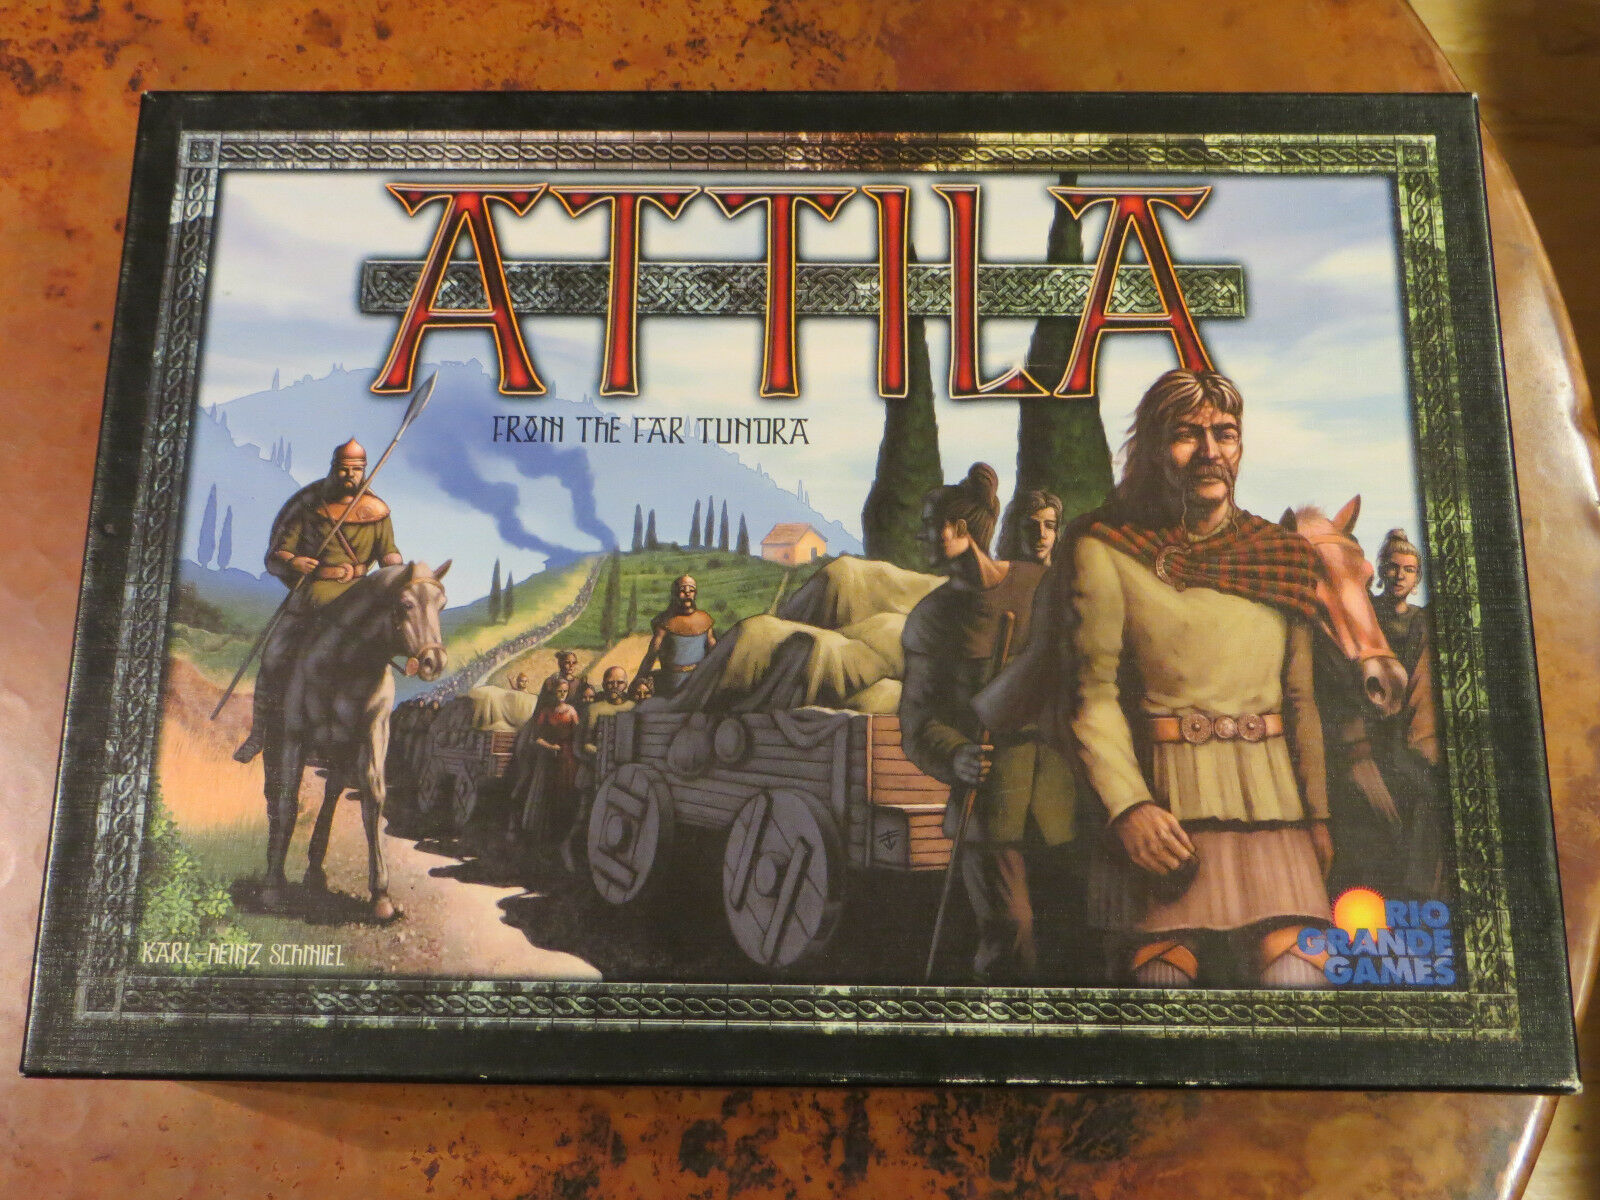 Attila From the Far Tundra - Board Game - Rio Grande Games - Very Rare